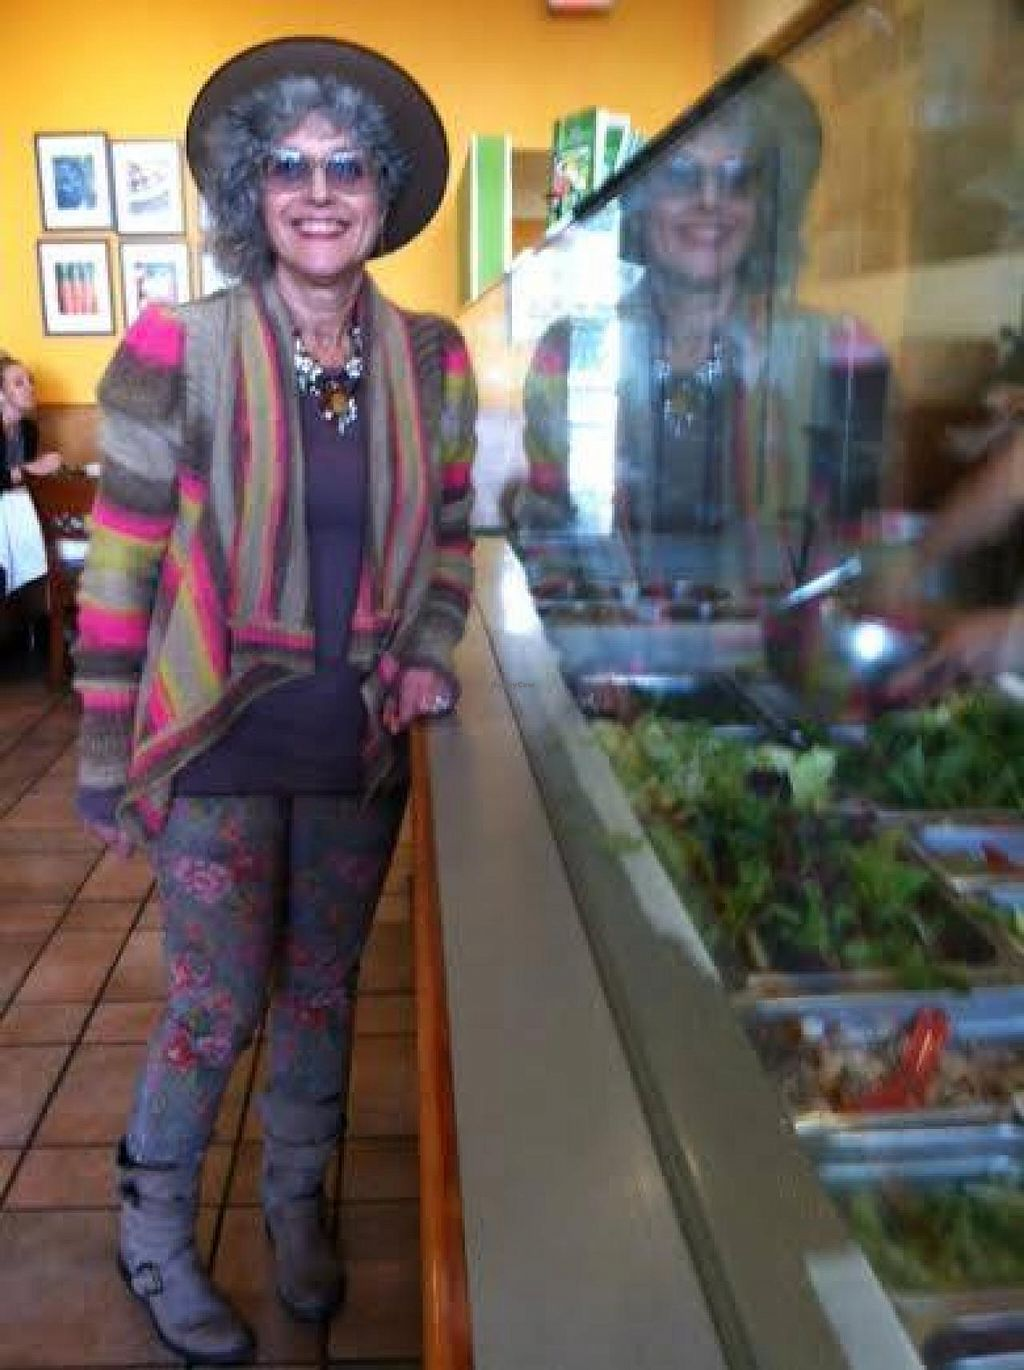 """Photo of Salad Farm  by <a href=""""/members/profile/Louise%20Green"""">Louise Green</a> <br/>One happy vegan <br/> December 18, 2014  - <a href='/contact/abuse/image/53907/88222'>Report</a>"""